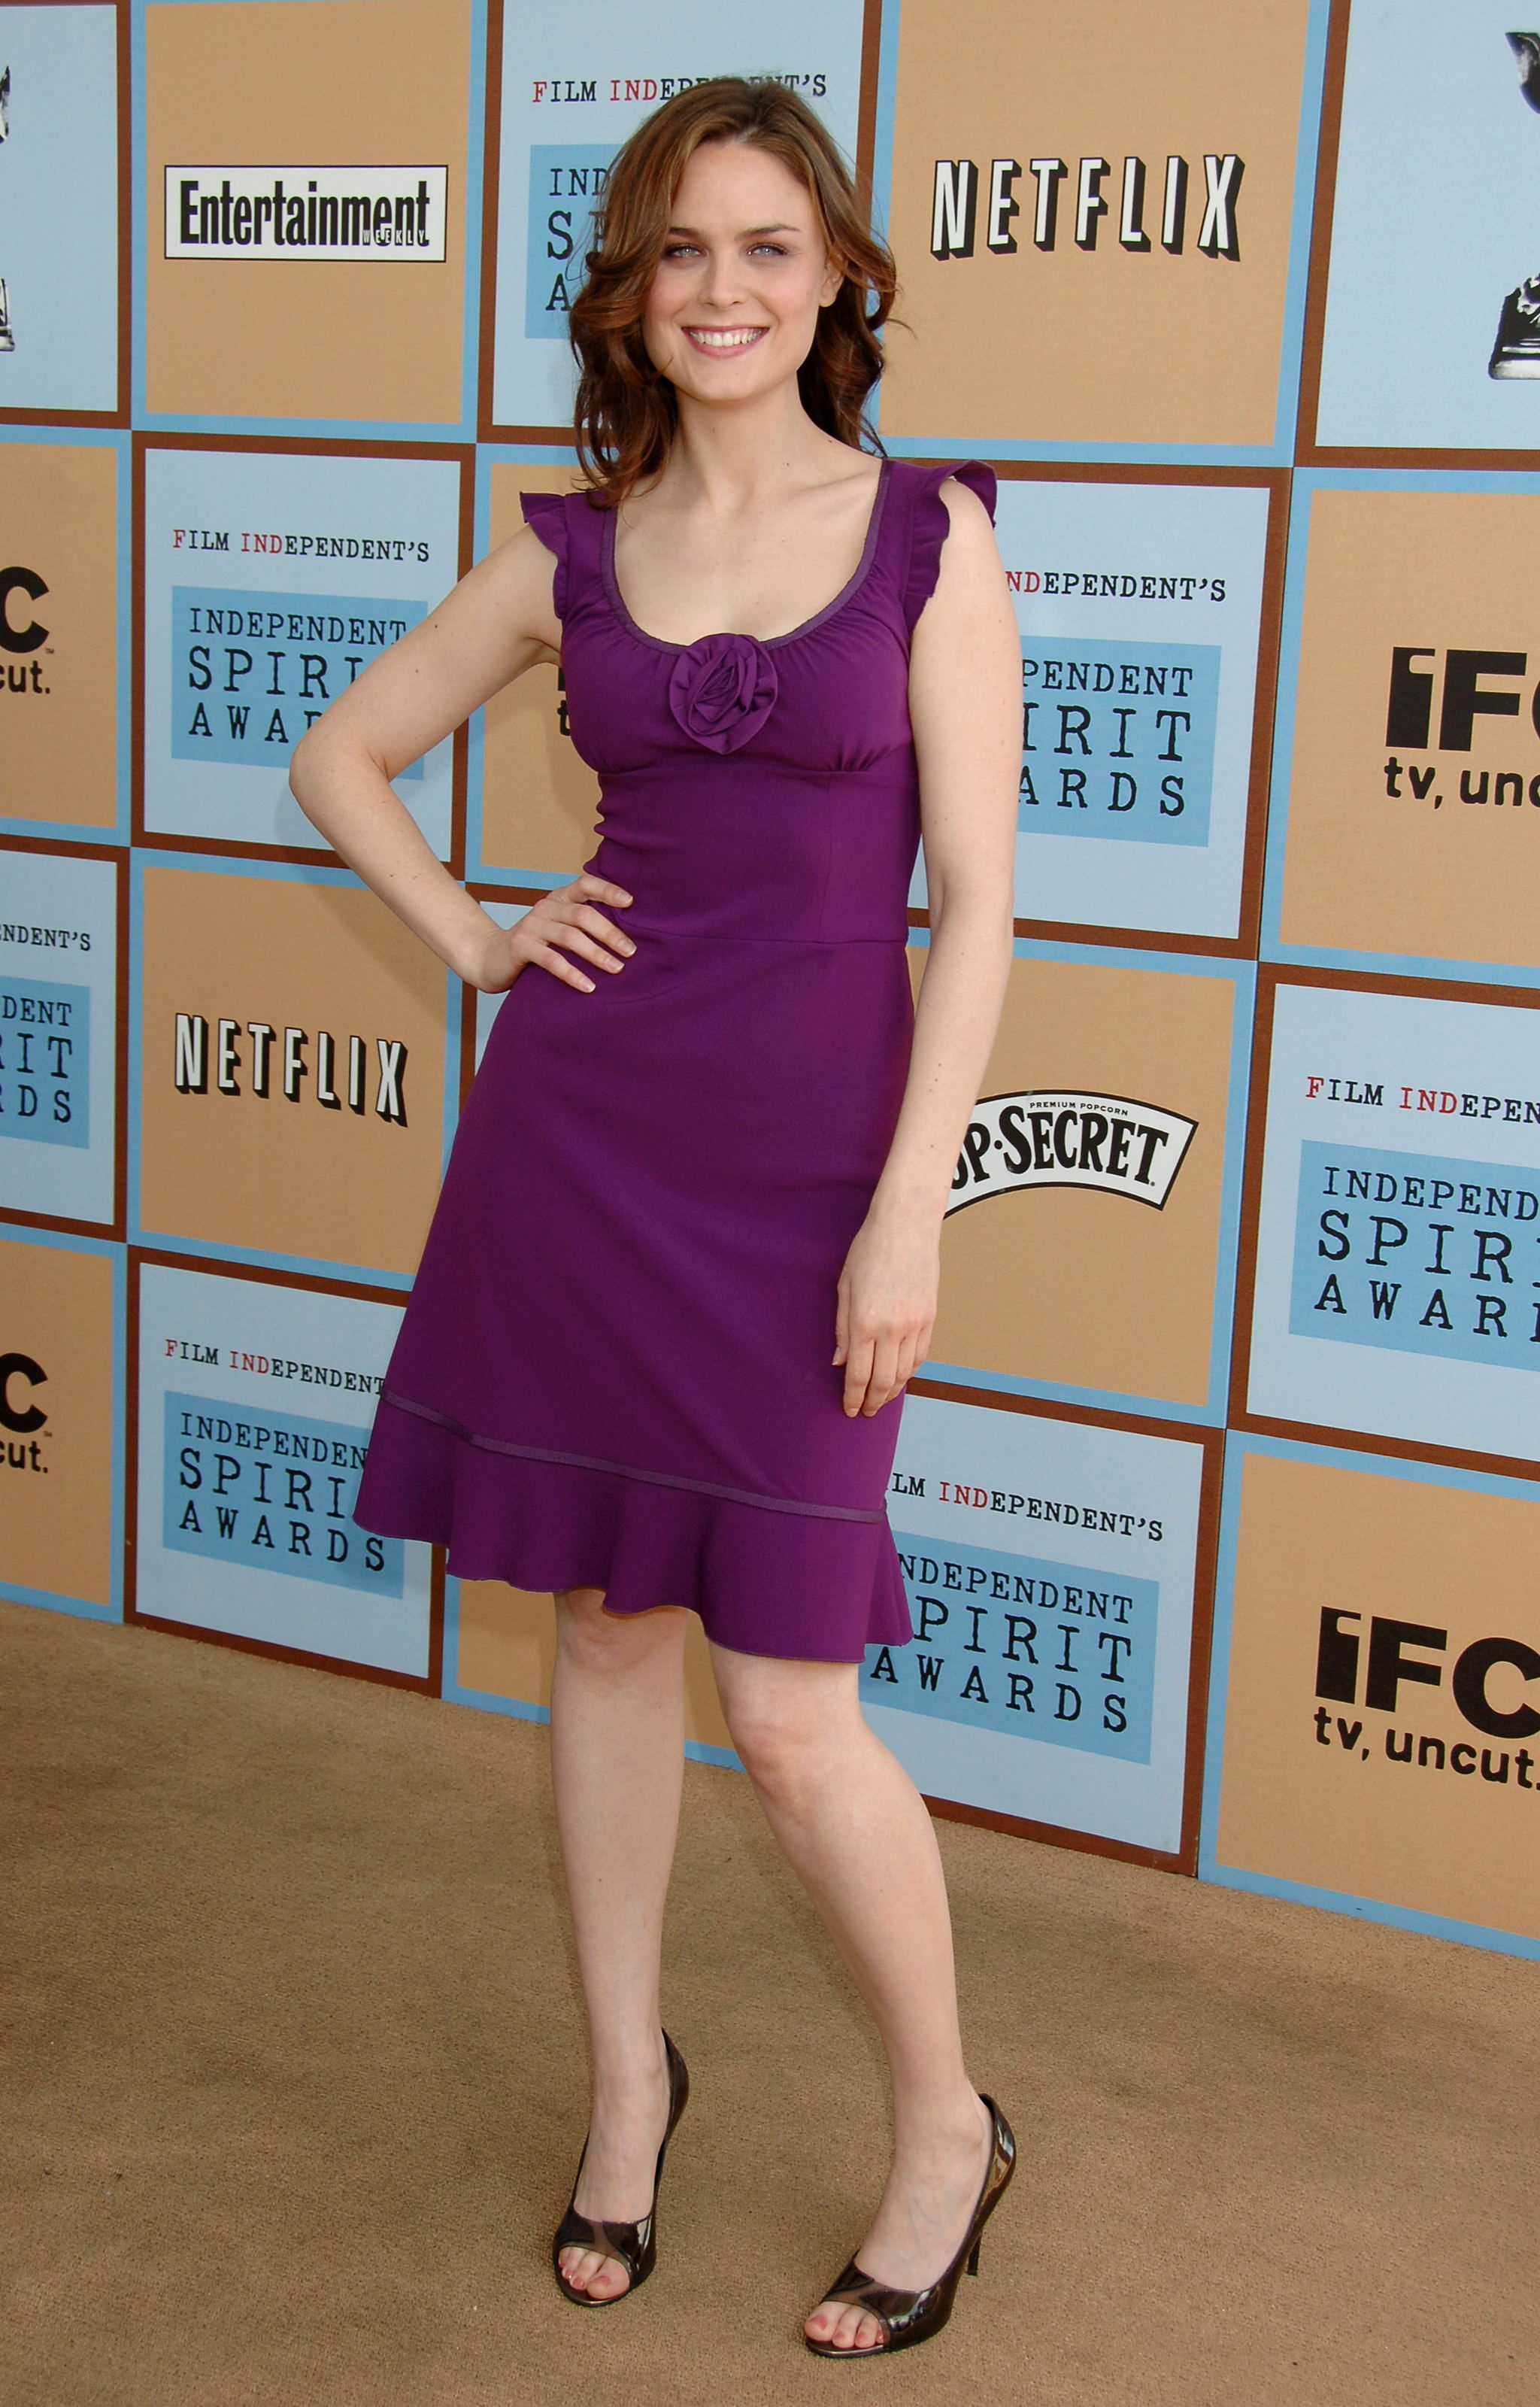 Was Emily deschanel feet and legs was registered